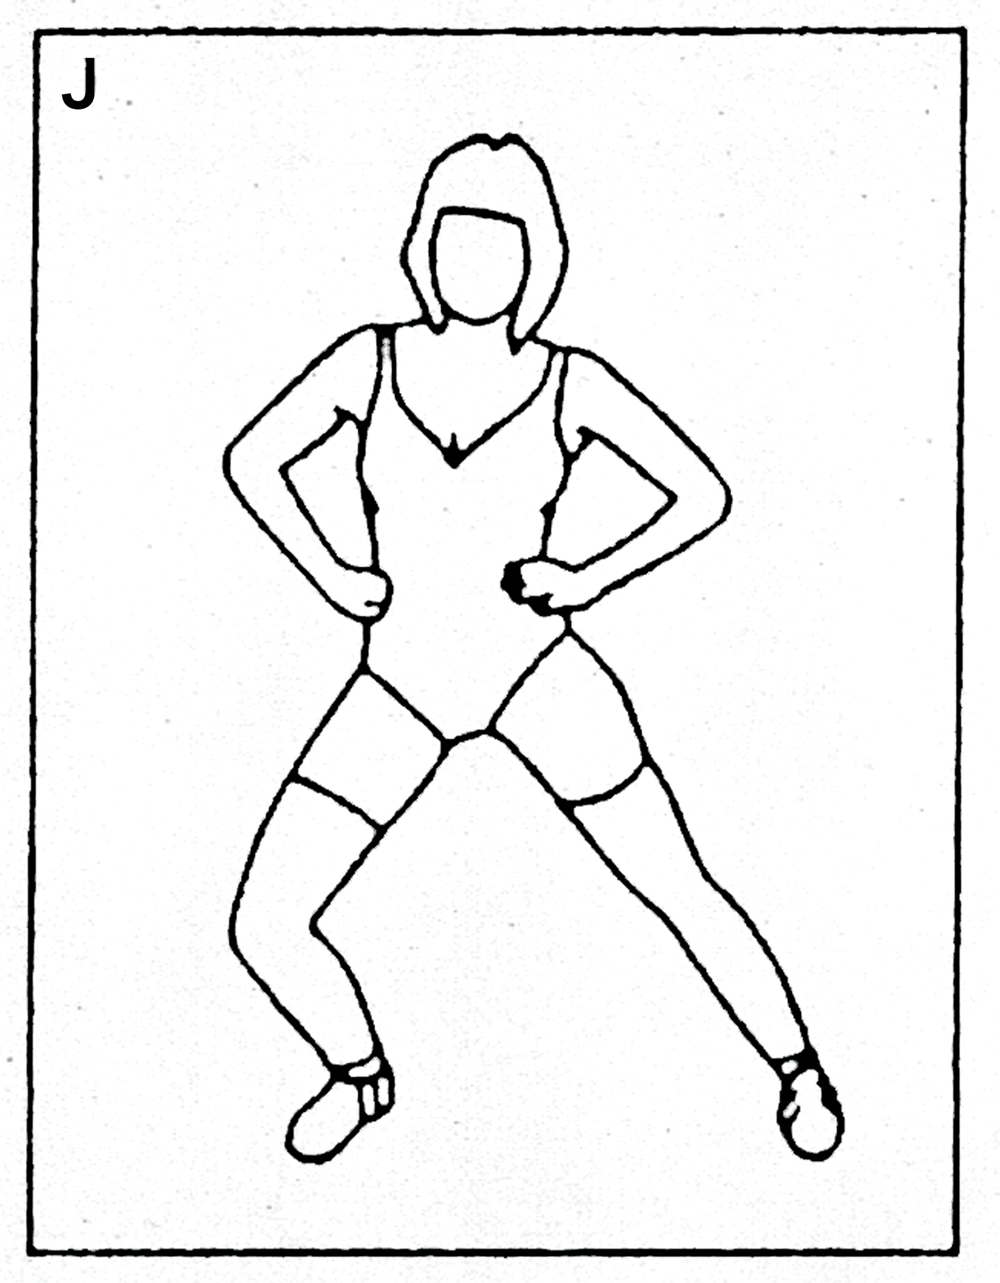 Goodspeed_Illustration_WorkItOut2.png